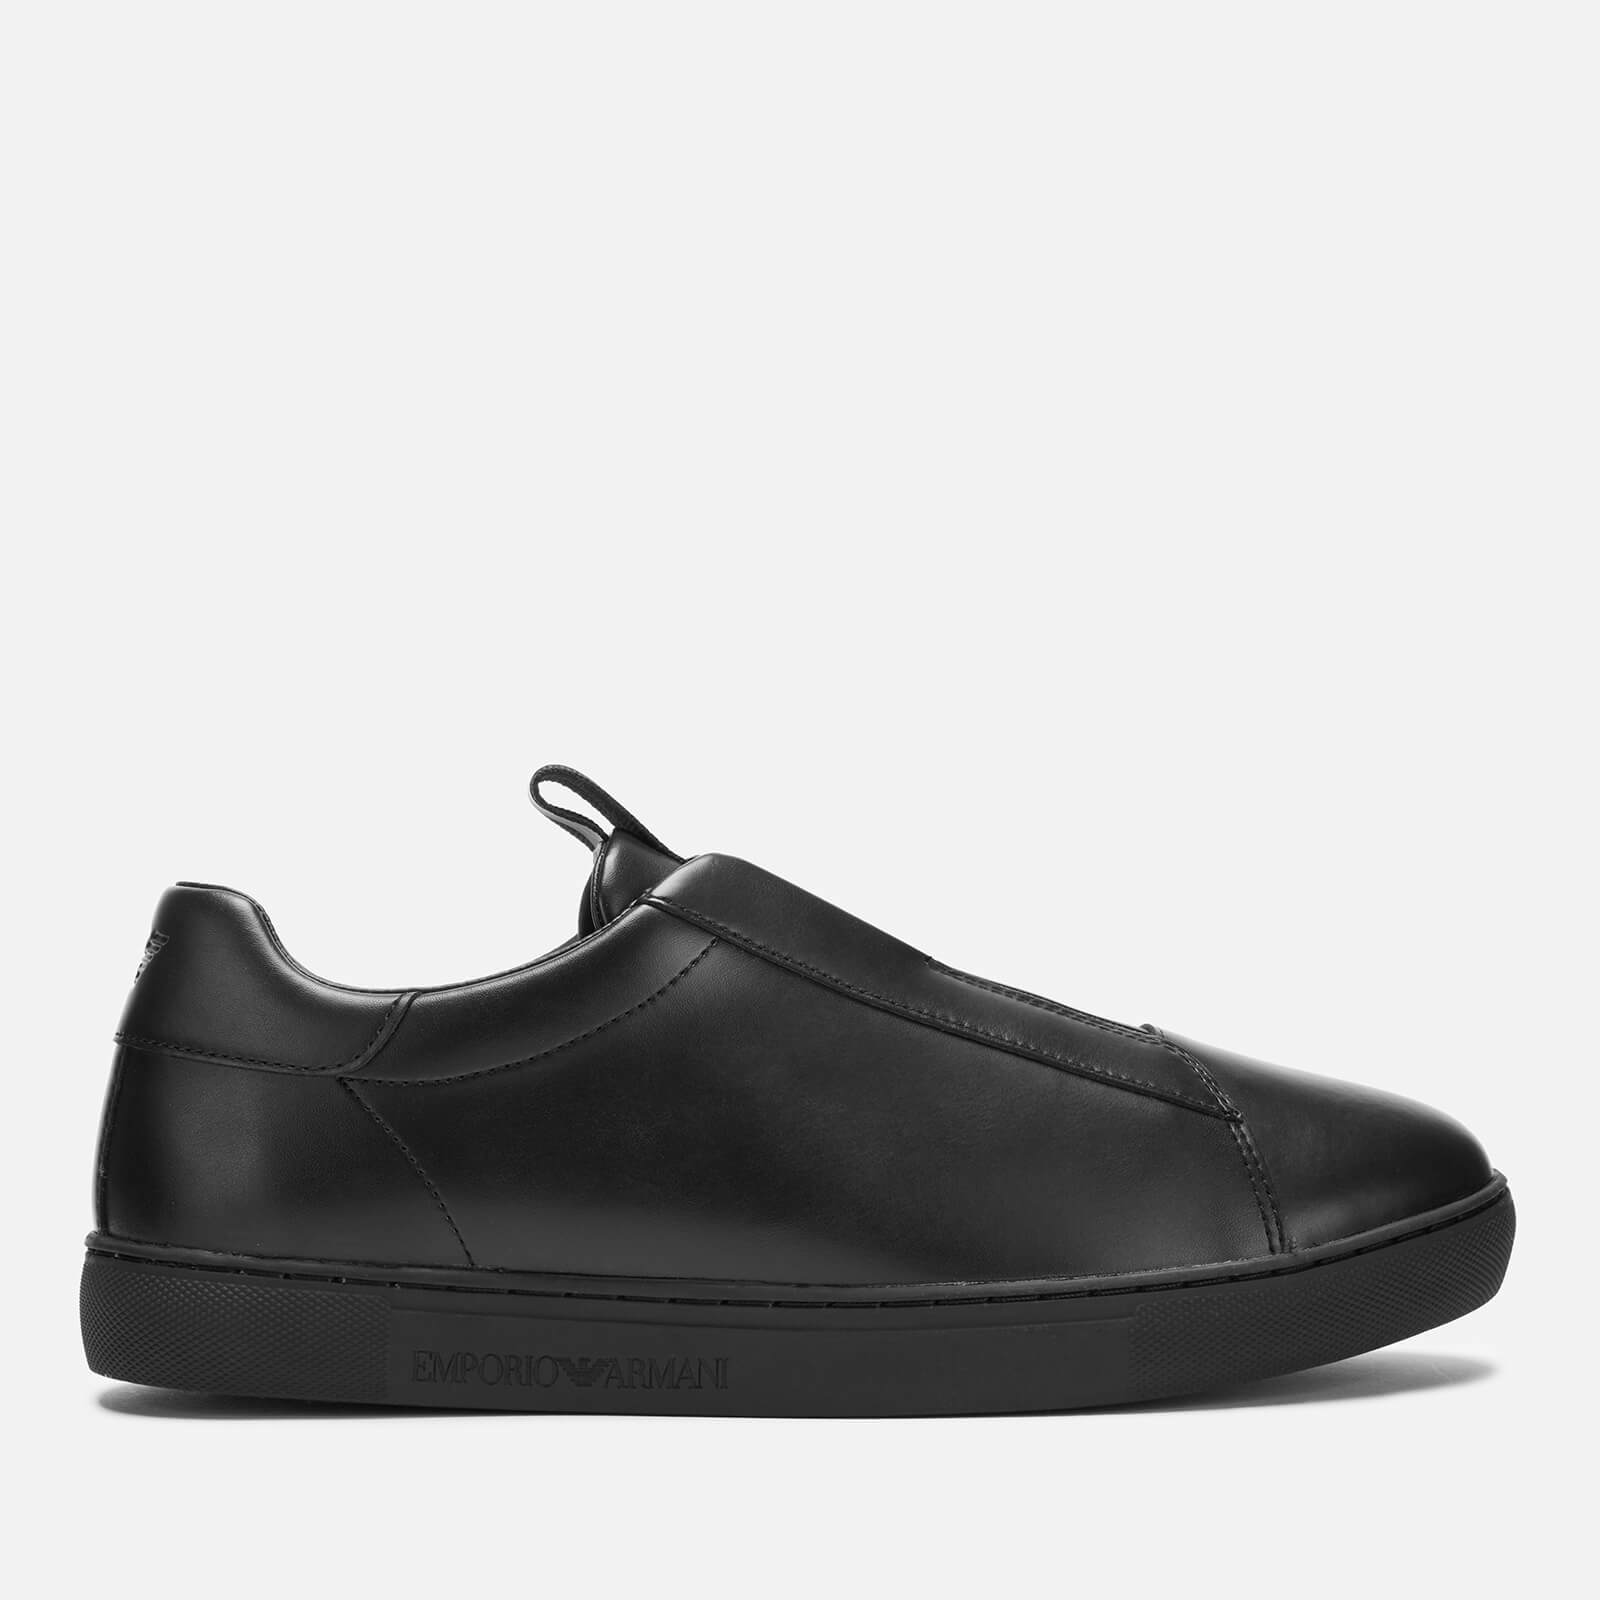 special for shoe famous brand great look Emporio Armani Men's Stan Leather Slip-On Trainers - Black/Black/Black